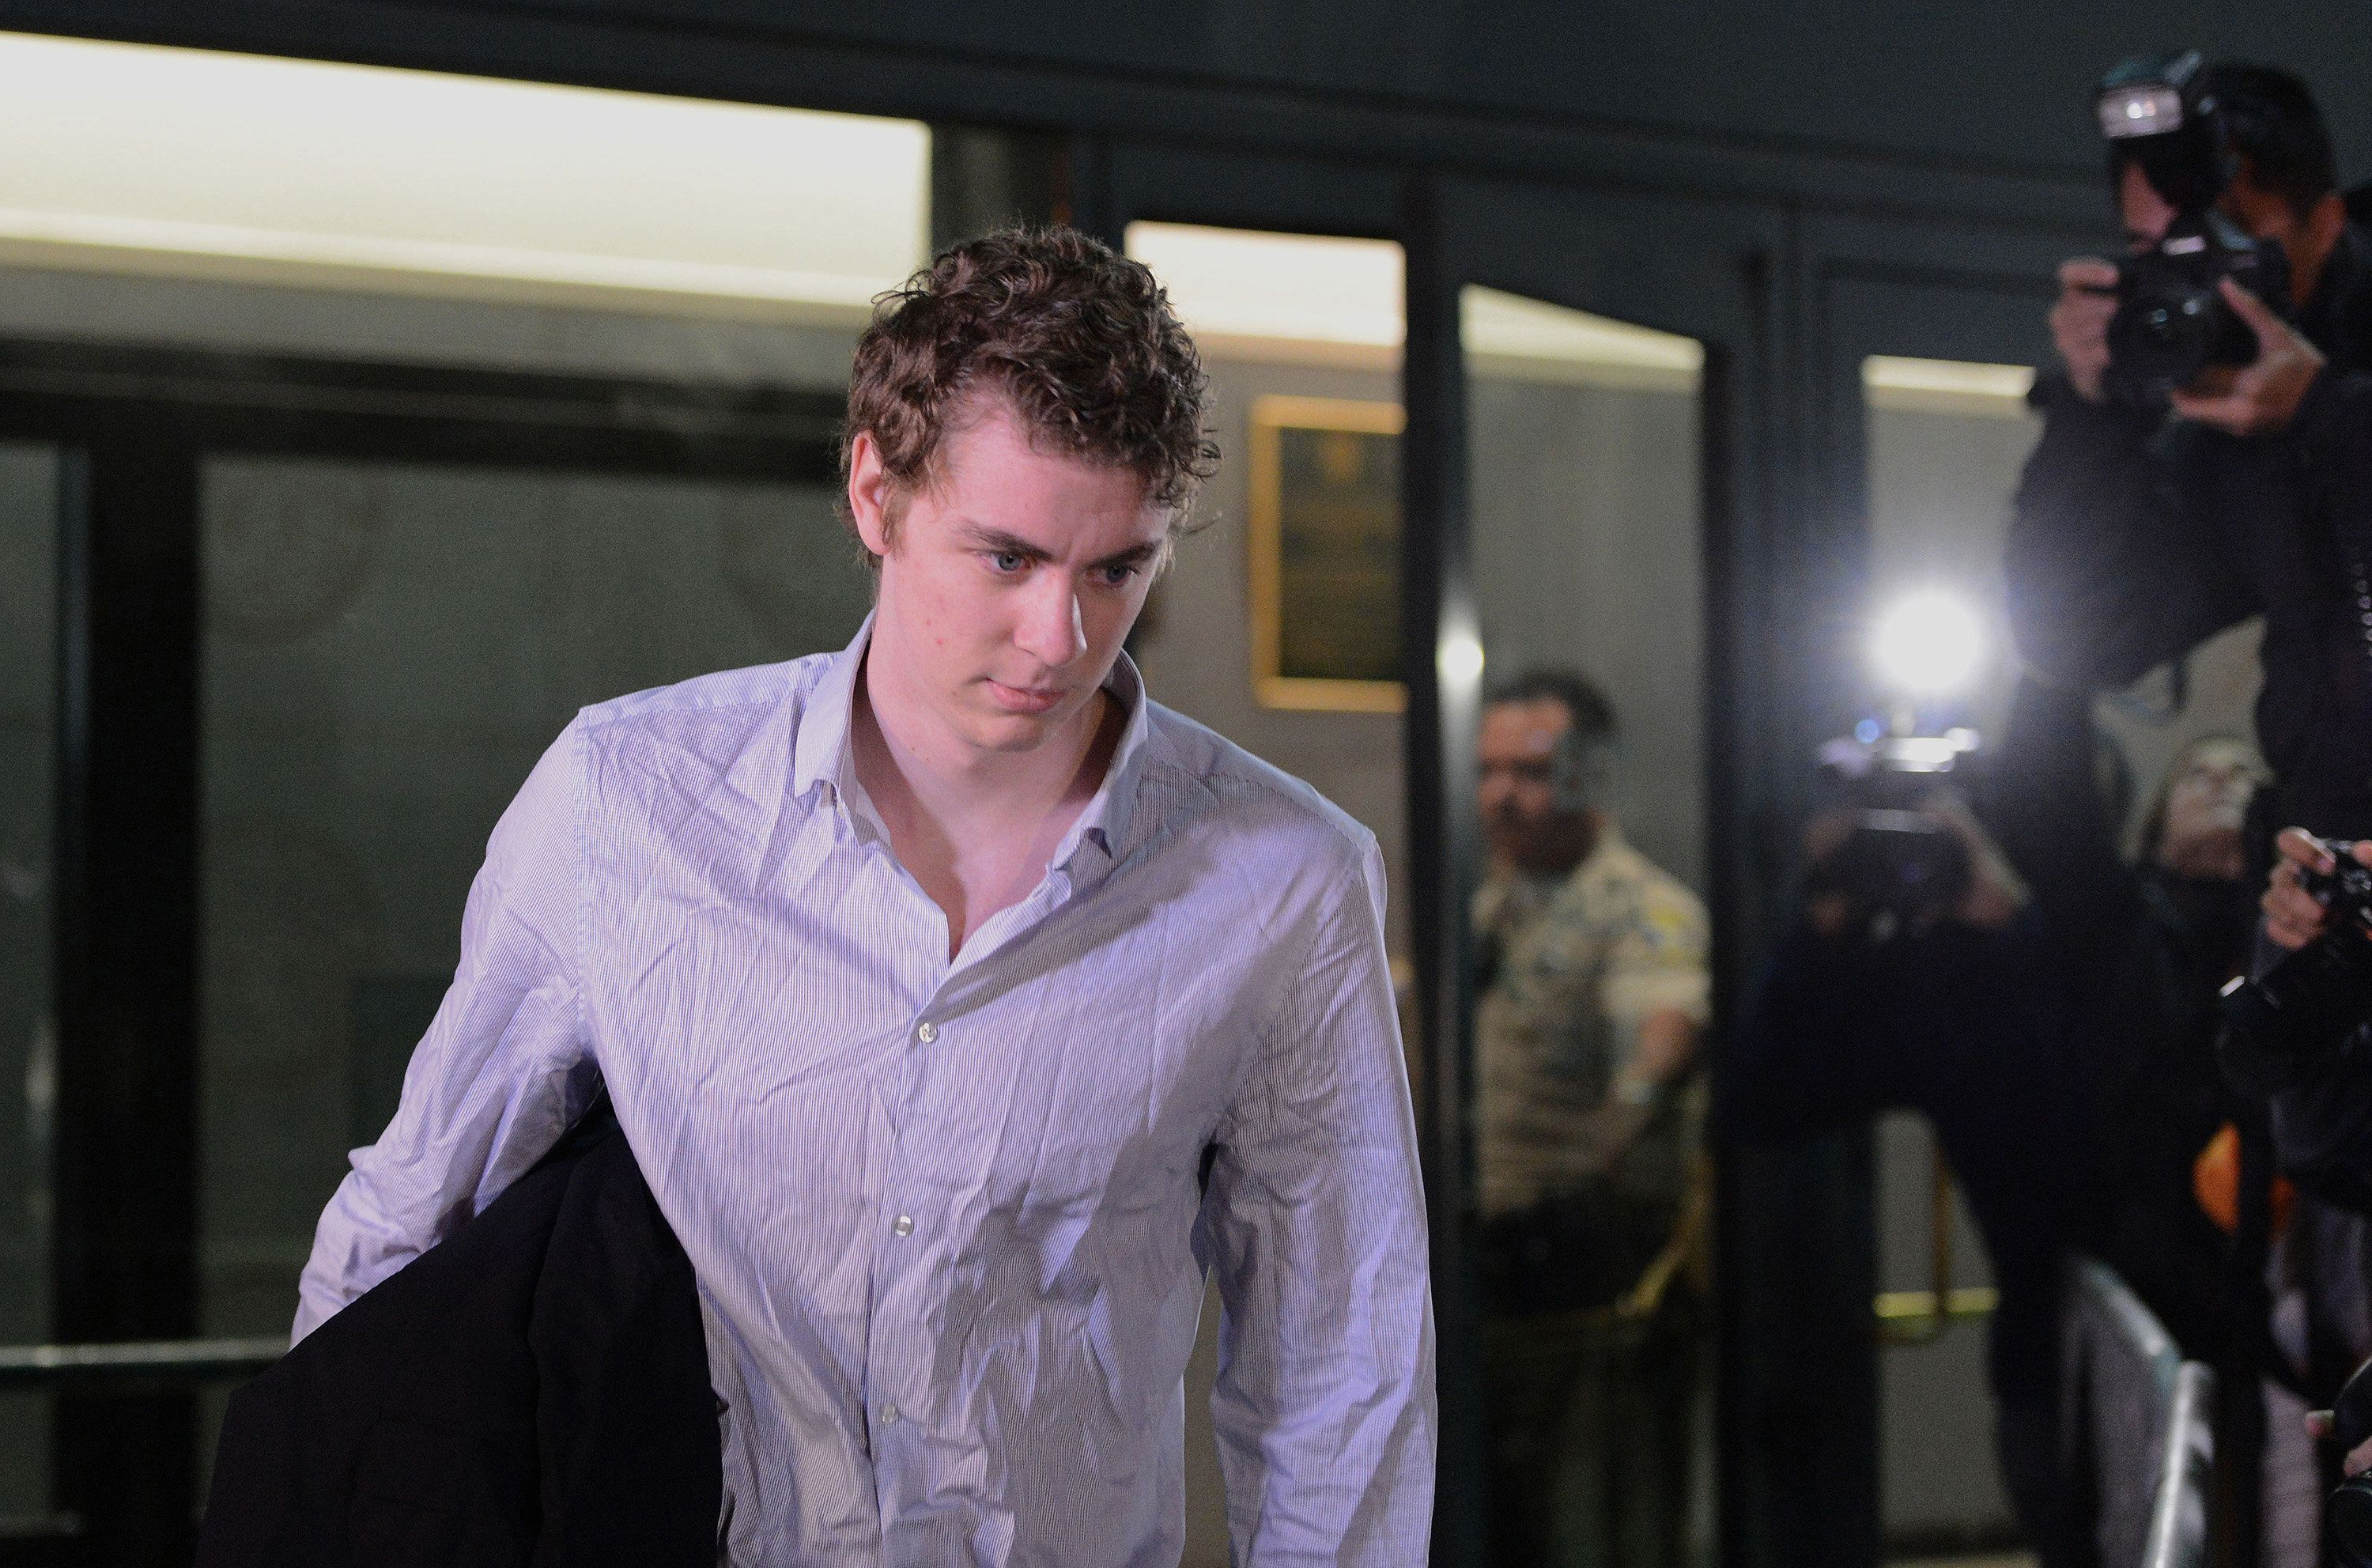 Brock Turner leaves the Santa Clara County jail on Sept. 2, 2016, after serving just three months for sexually assaulting an